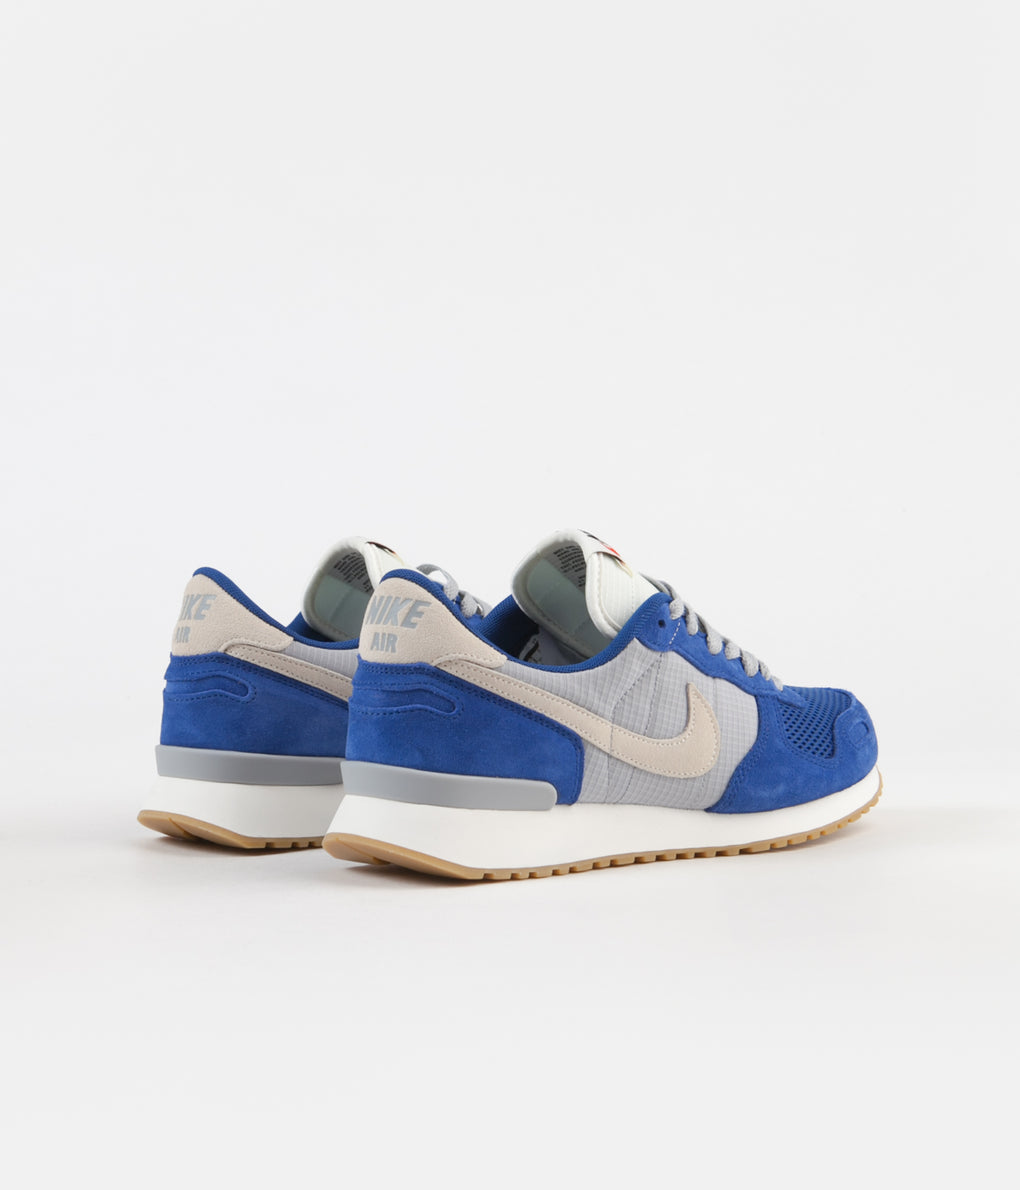 Nike Air Vortex Shoes - Indigo Force / Light Cream - Wolf Grey - Sail